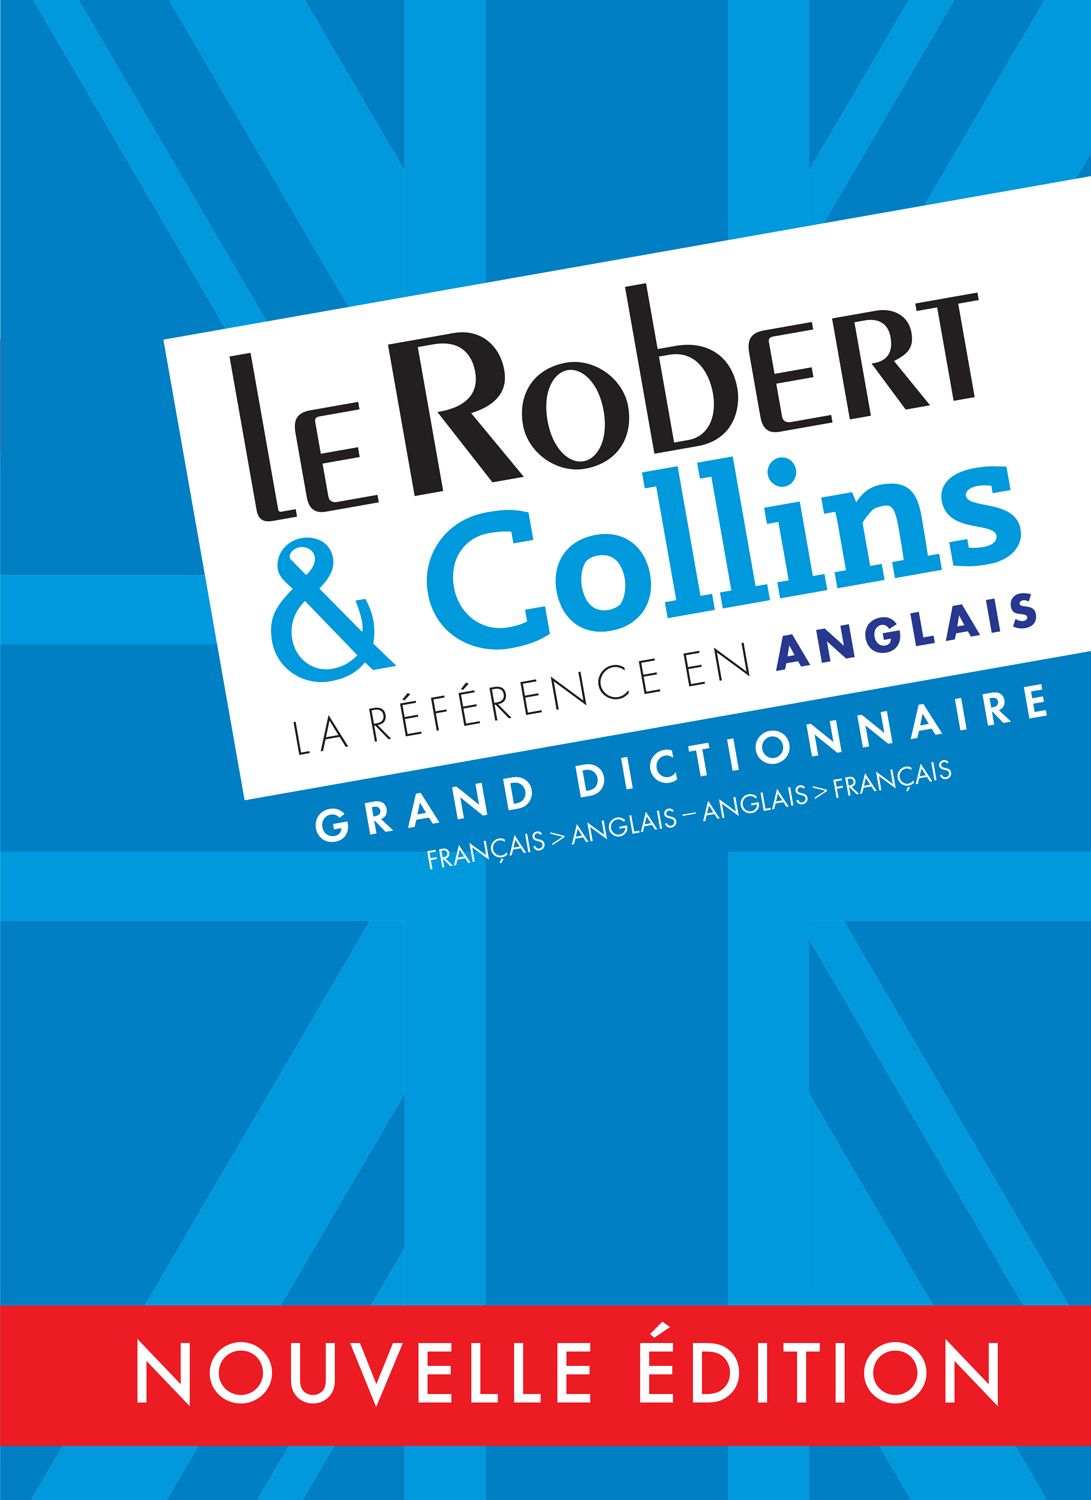 Dictionnaire Le Robert Et Collins Grand Dictionnaire Francais Anglais Anglais Francais Book Review Blogs Fantasy Books To Read Best Books To Read